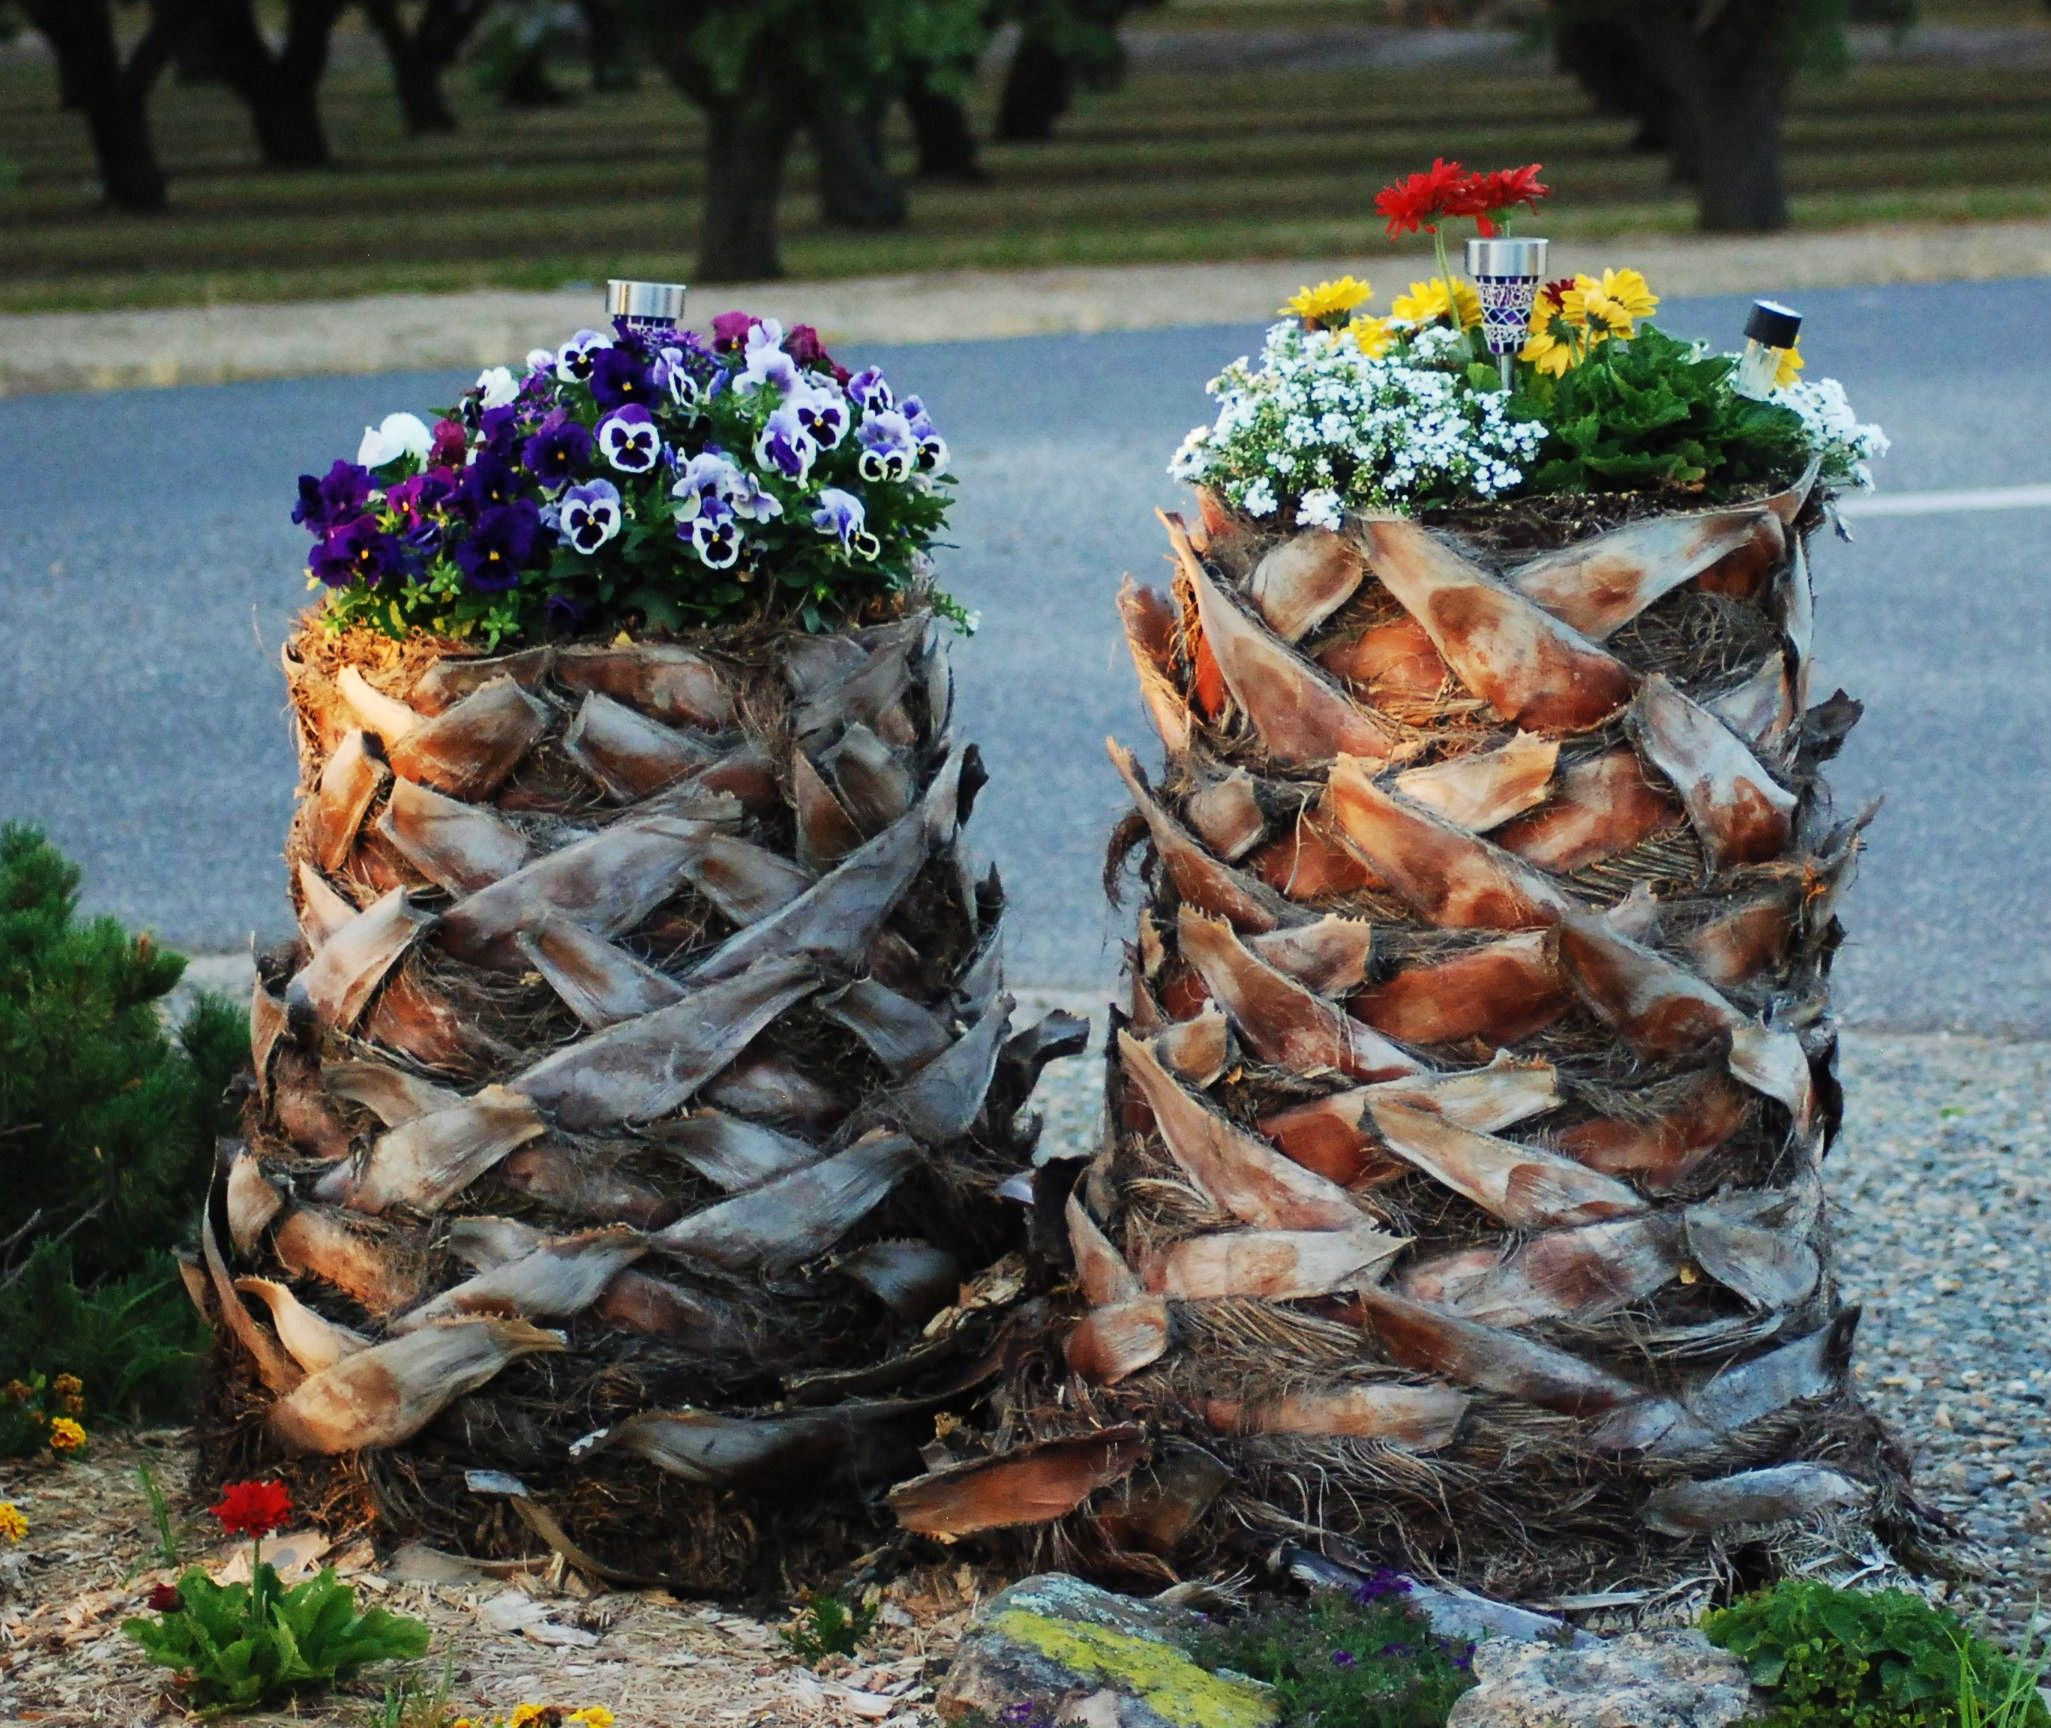 We made the stumps from our palm trees into planters just for Hollow tree trunk ideas